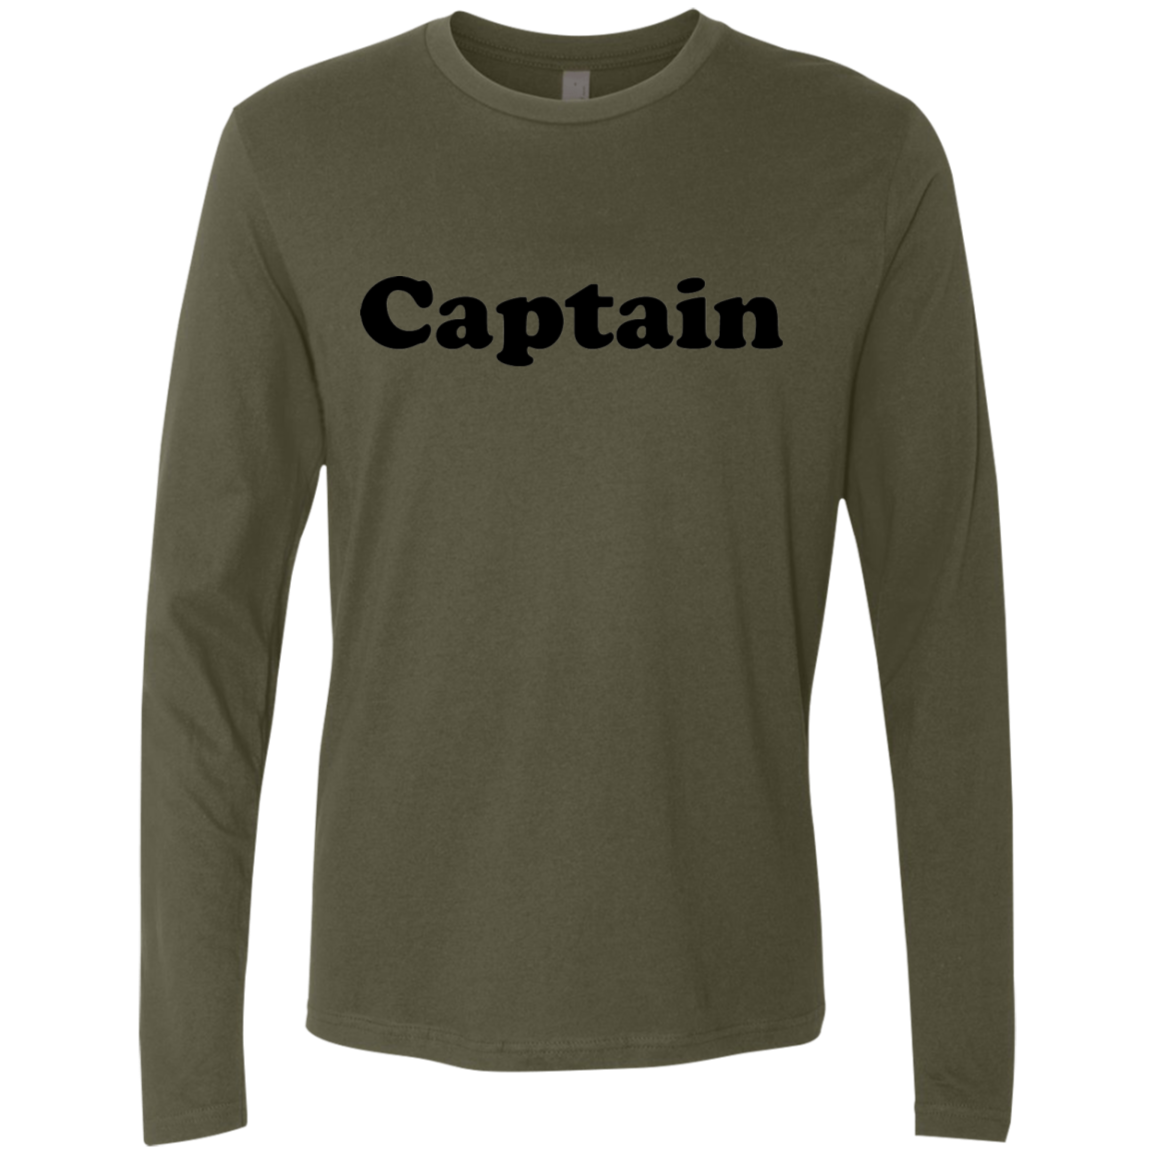 I'm The Captain Men's Long Sleeve Tee - Trendy Tees